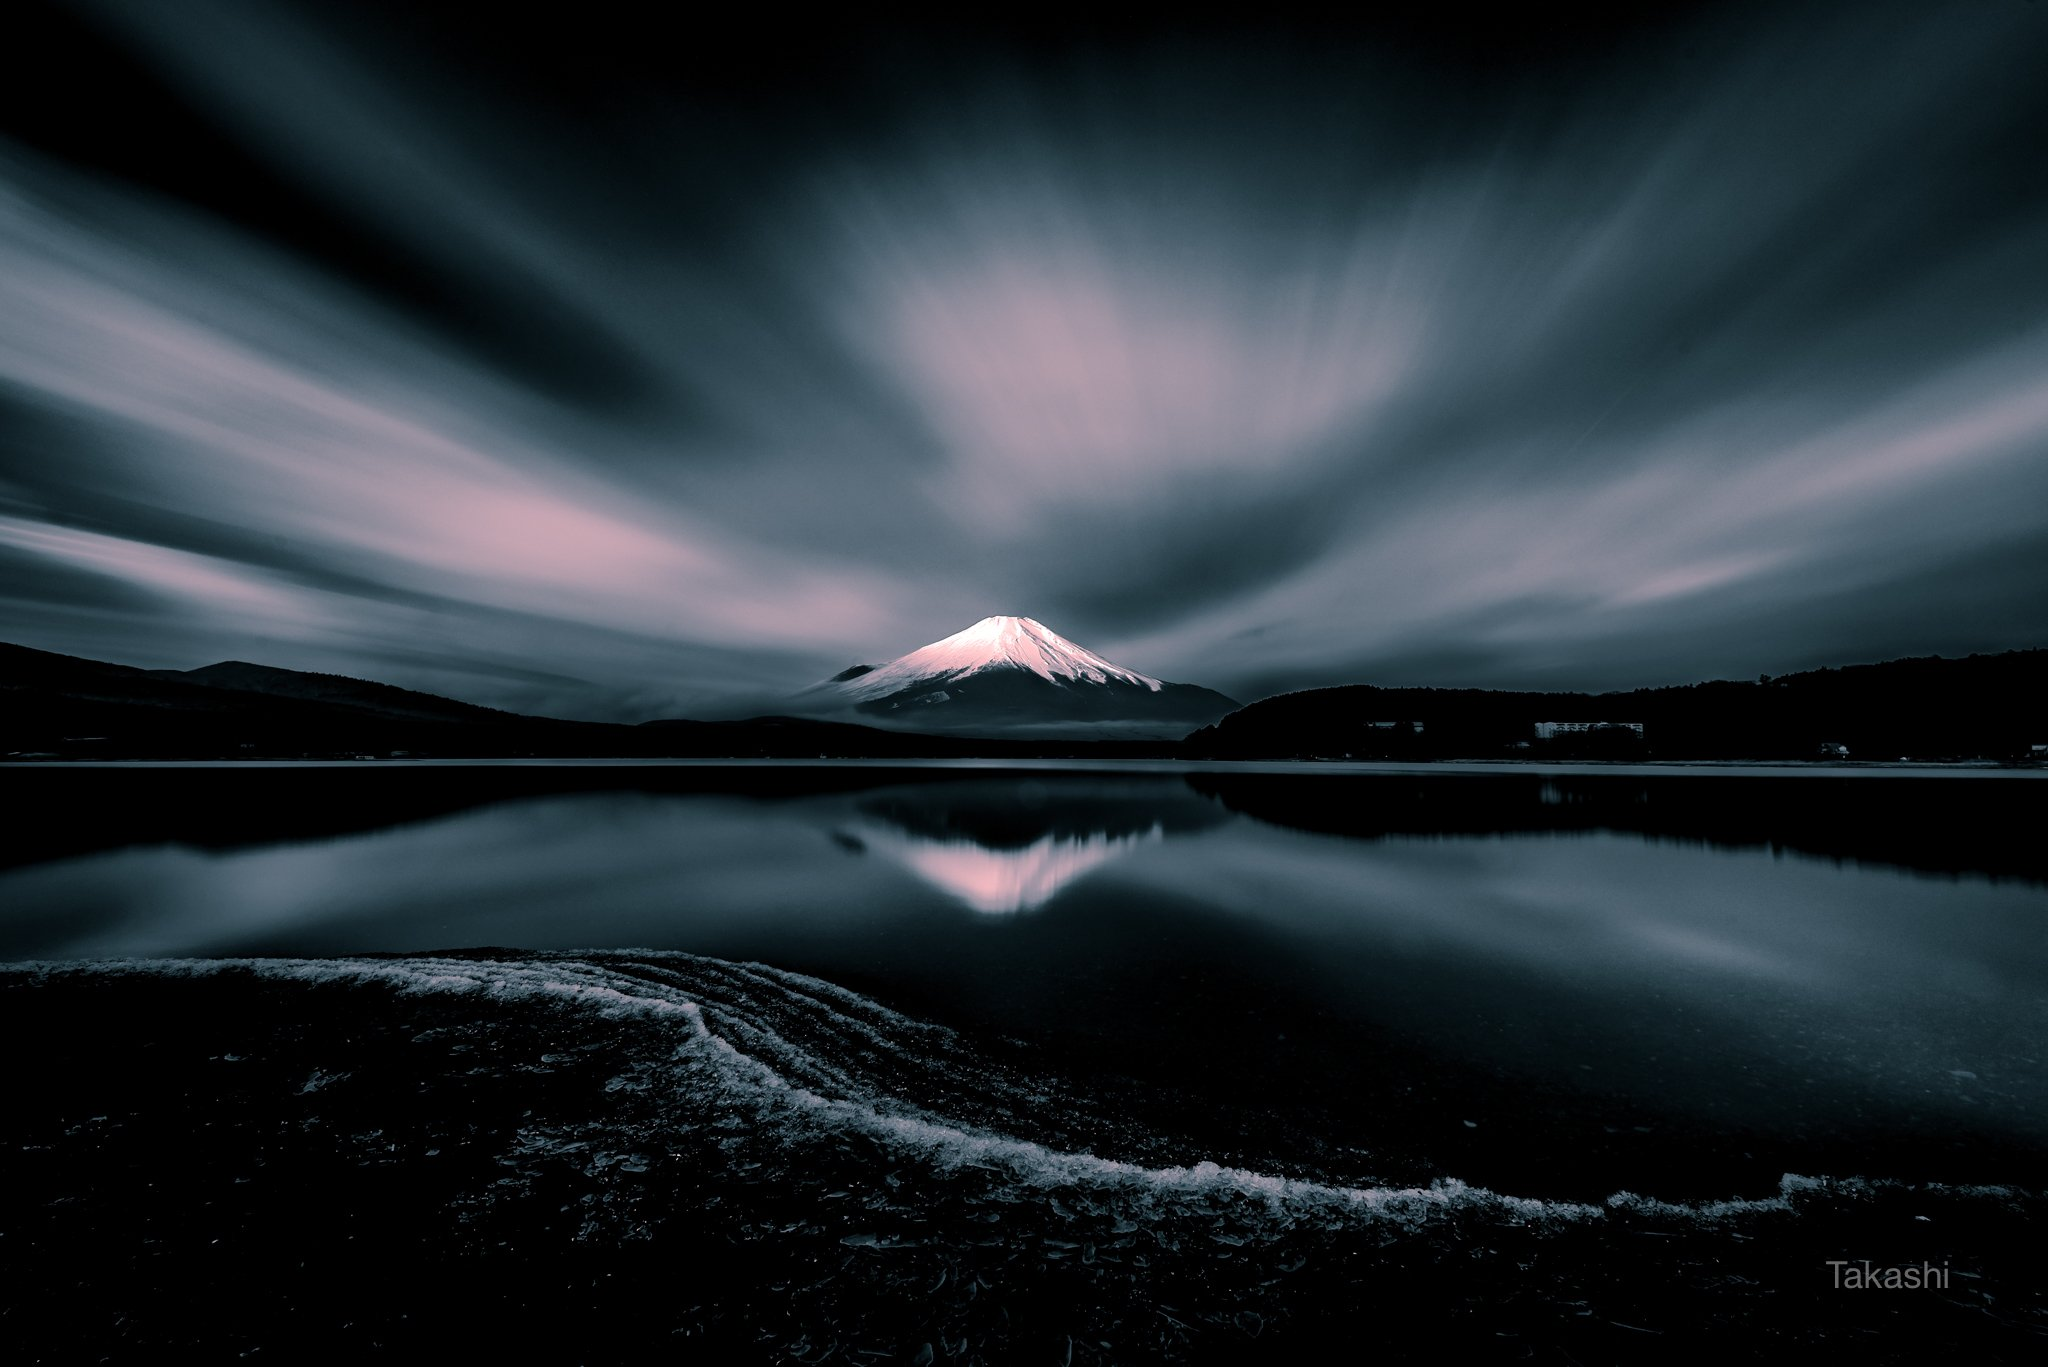 Fuji,Japan,mountain,cloud,ice,lake,water,reflection,snow,beautiful,amazing,, Takashi